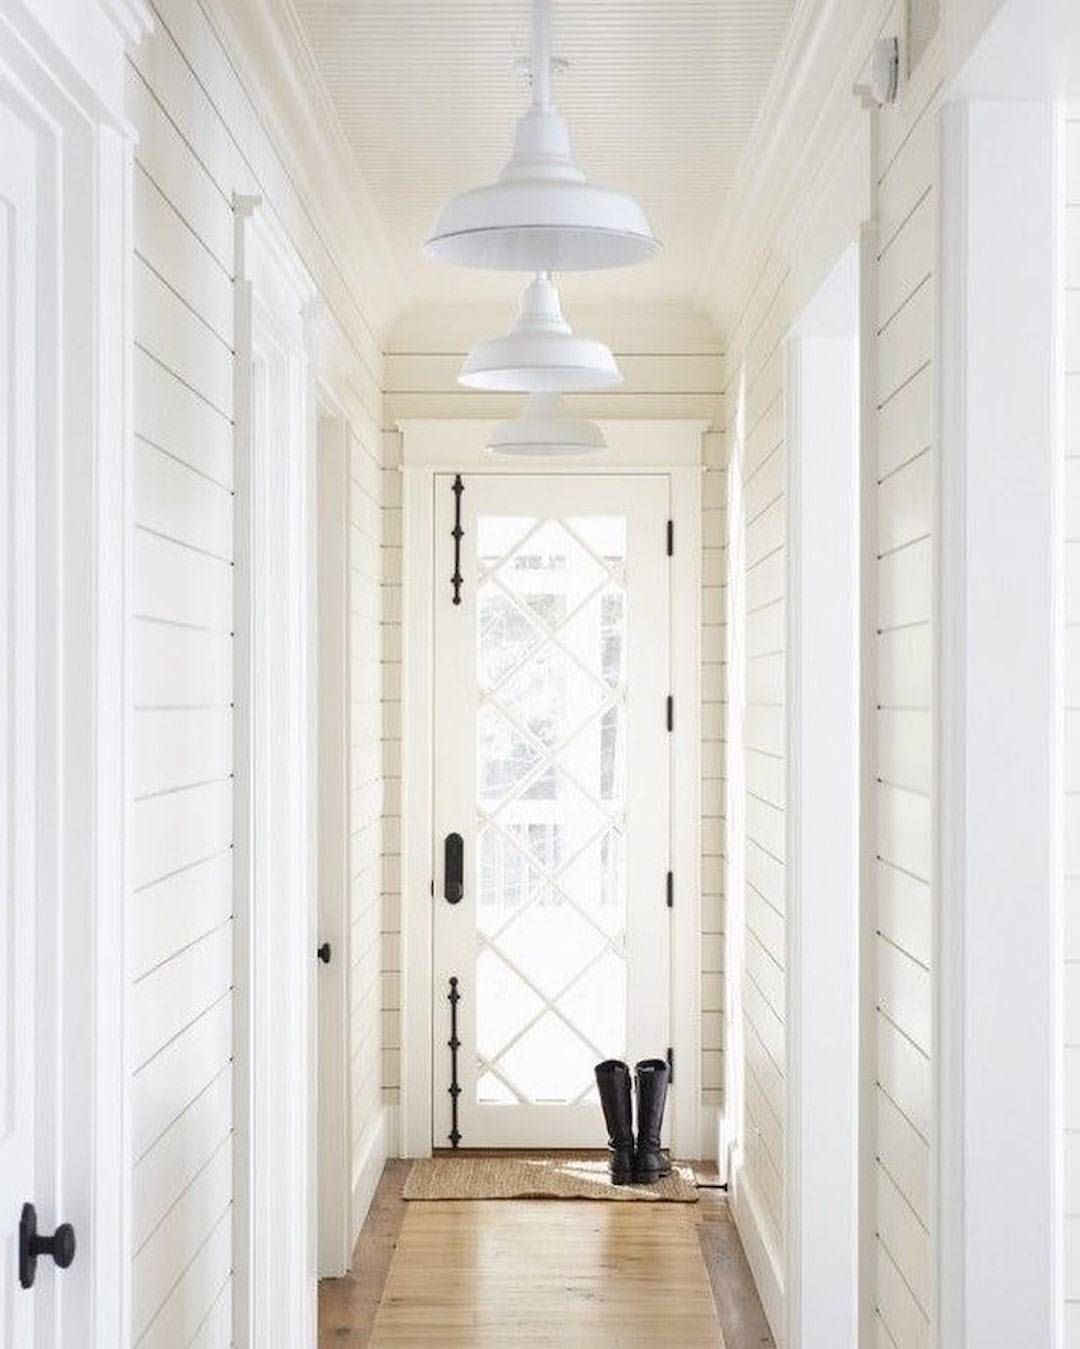 Entry hallway lighting  Pin by Lindsay Kujawa on Letus go outside  Pinterest  Entry hall